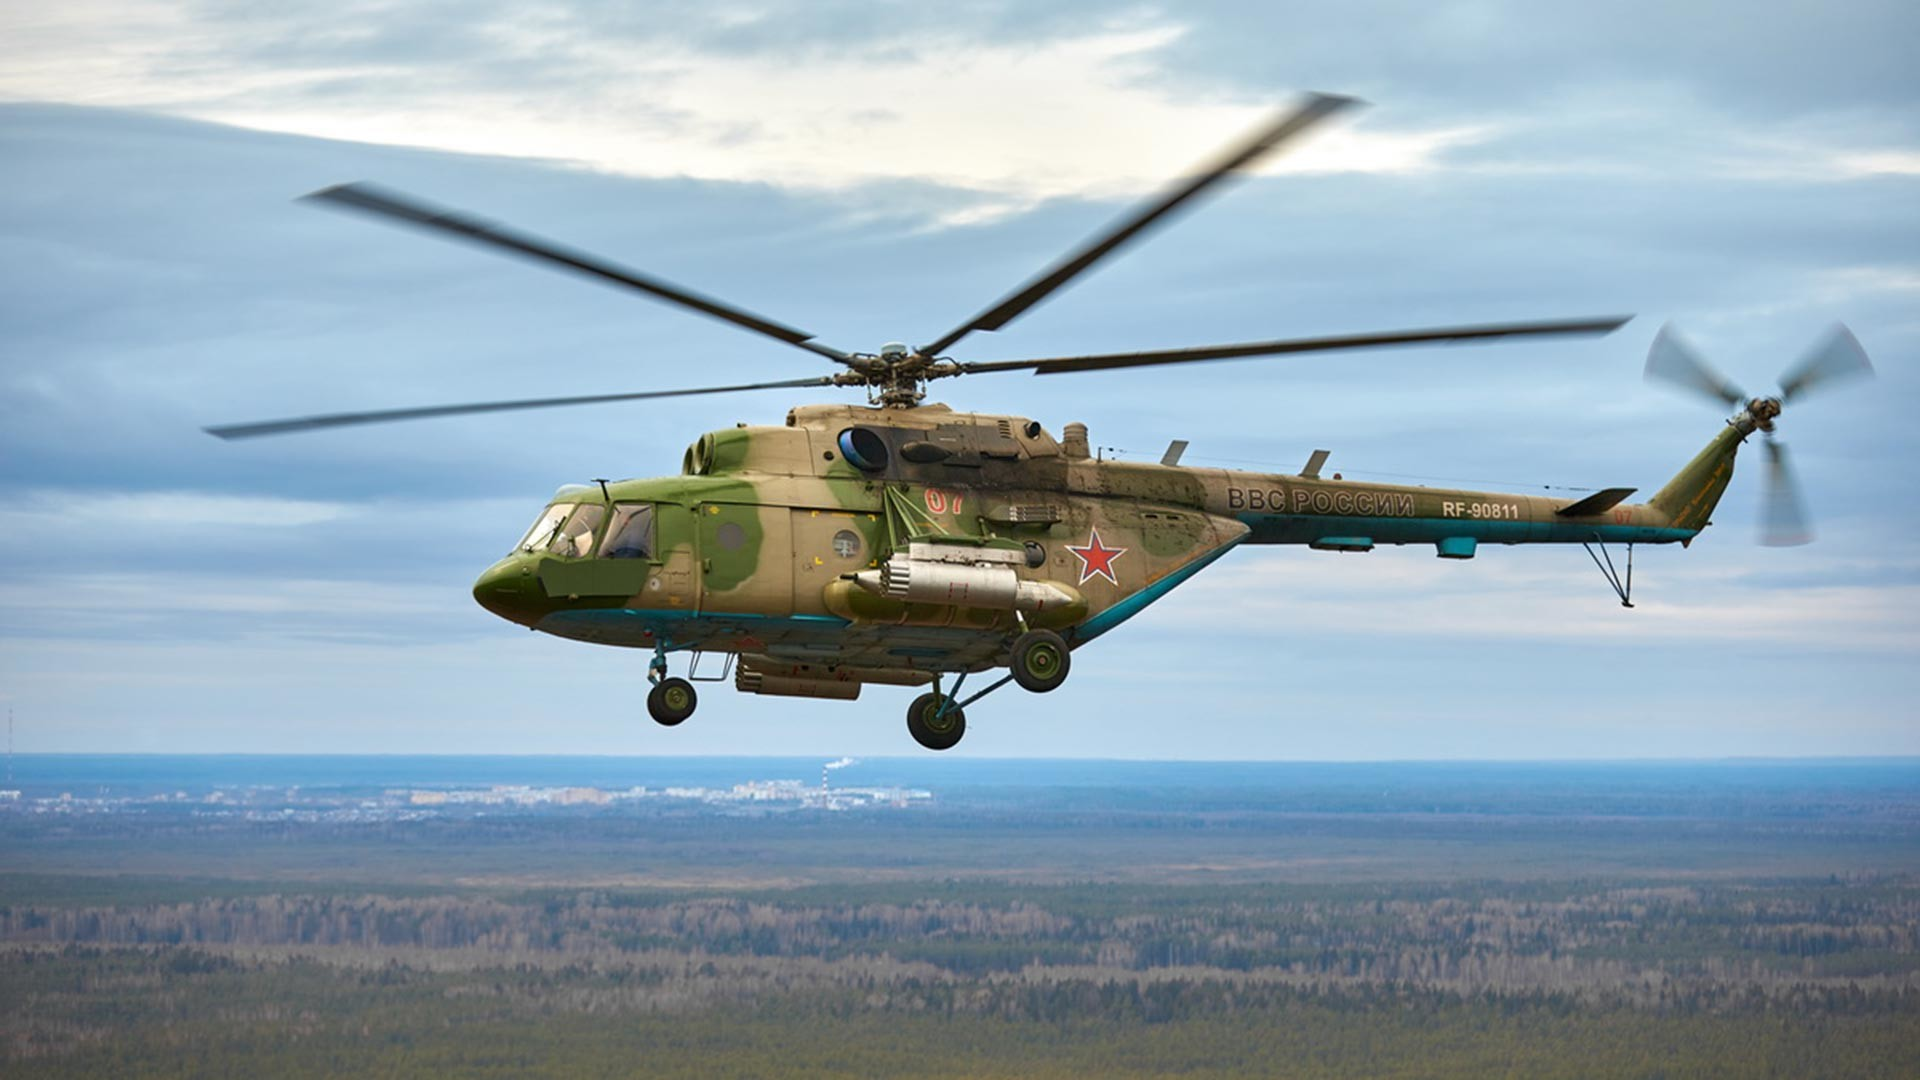 The Mi-8 helicopter of the Leningrad Association air force and air defense during one of the stages of the competition